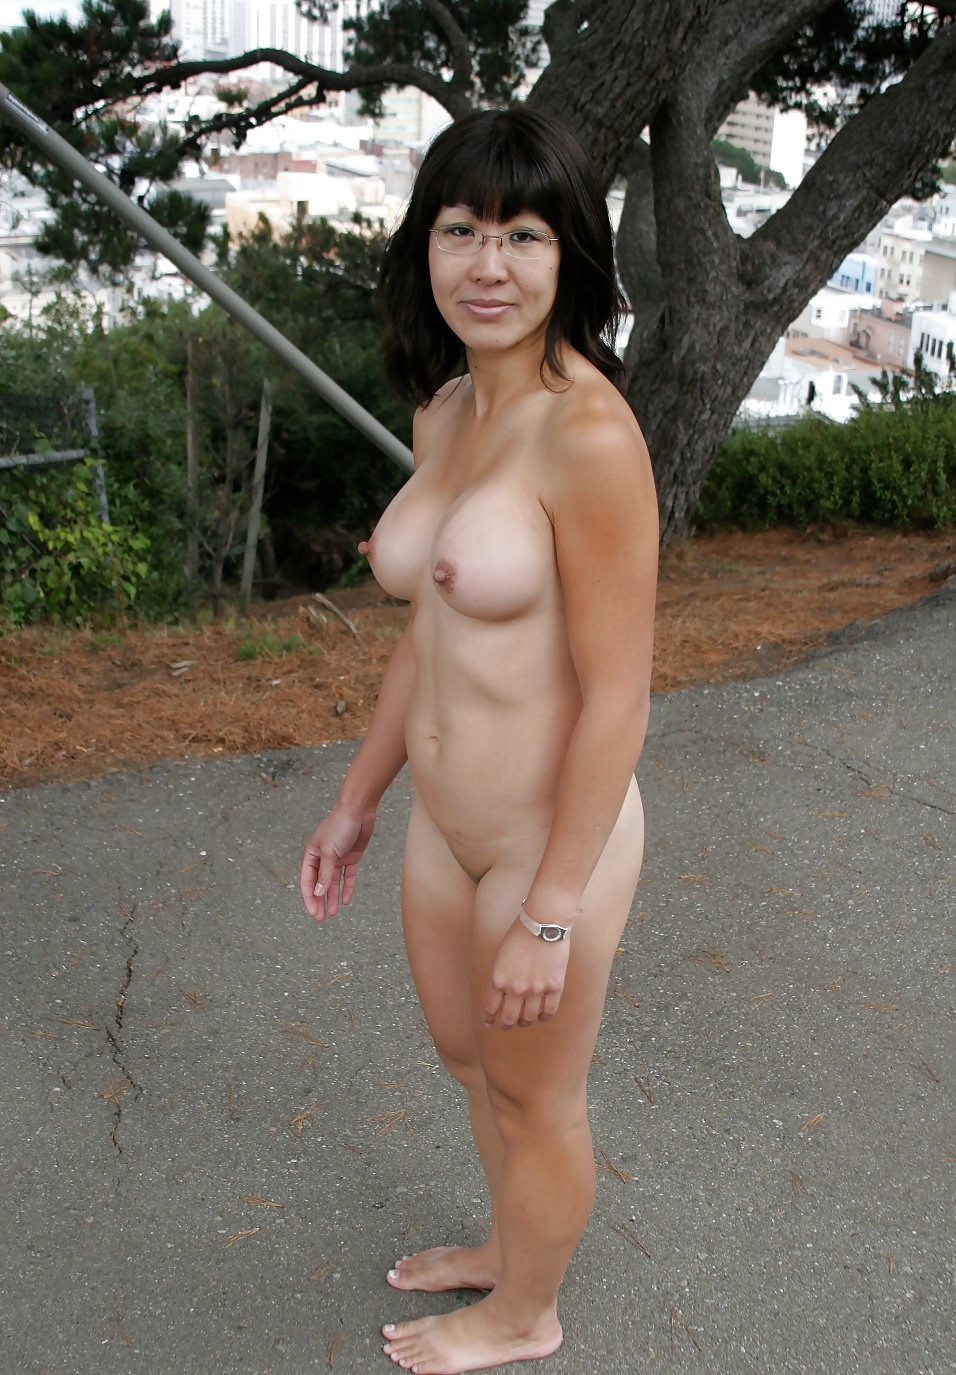 Naked ladies in public places-4630